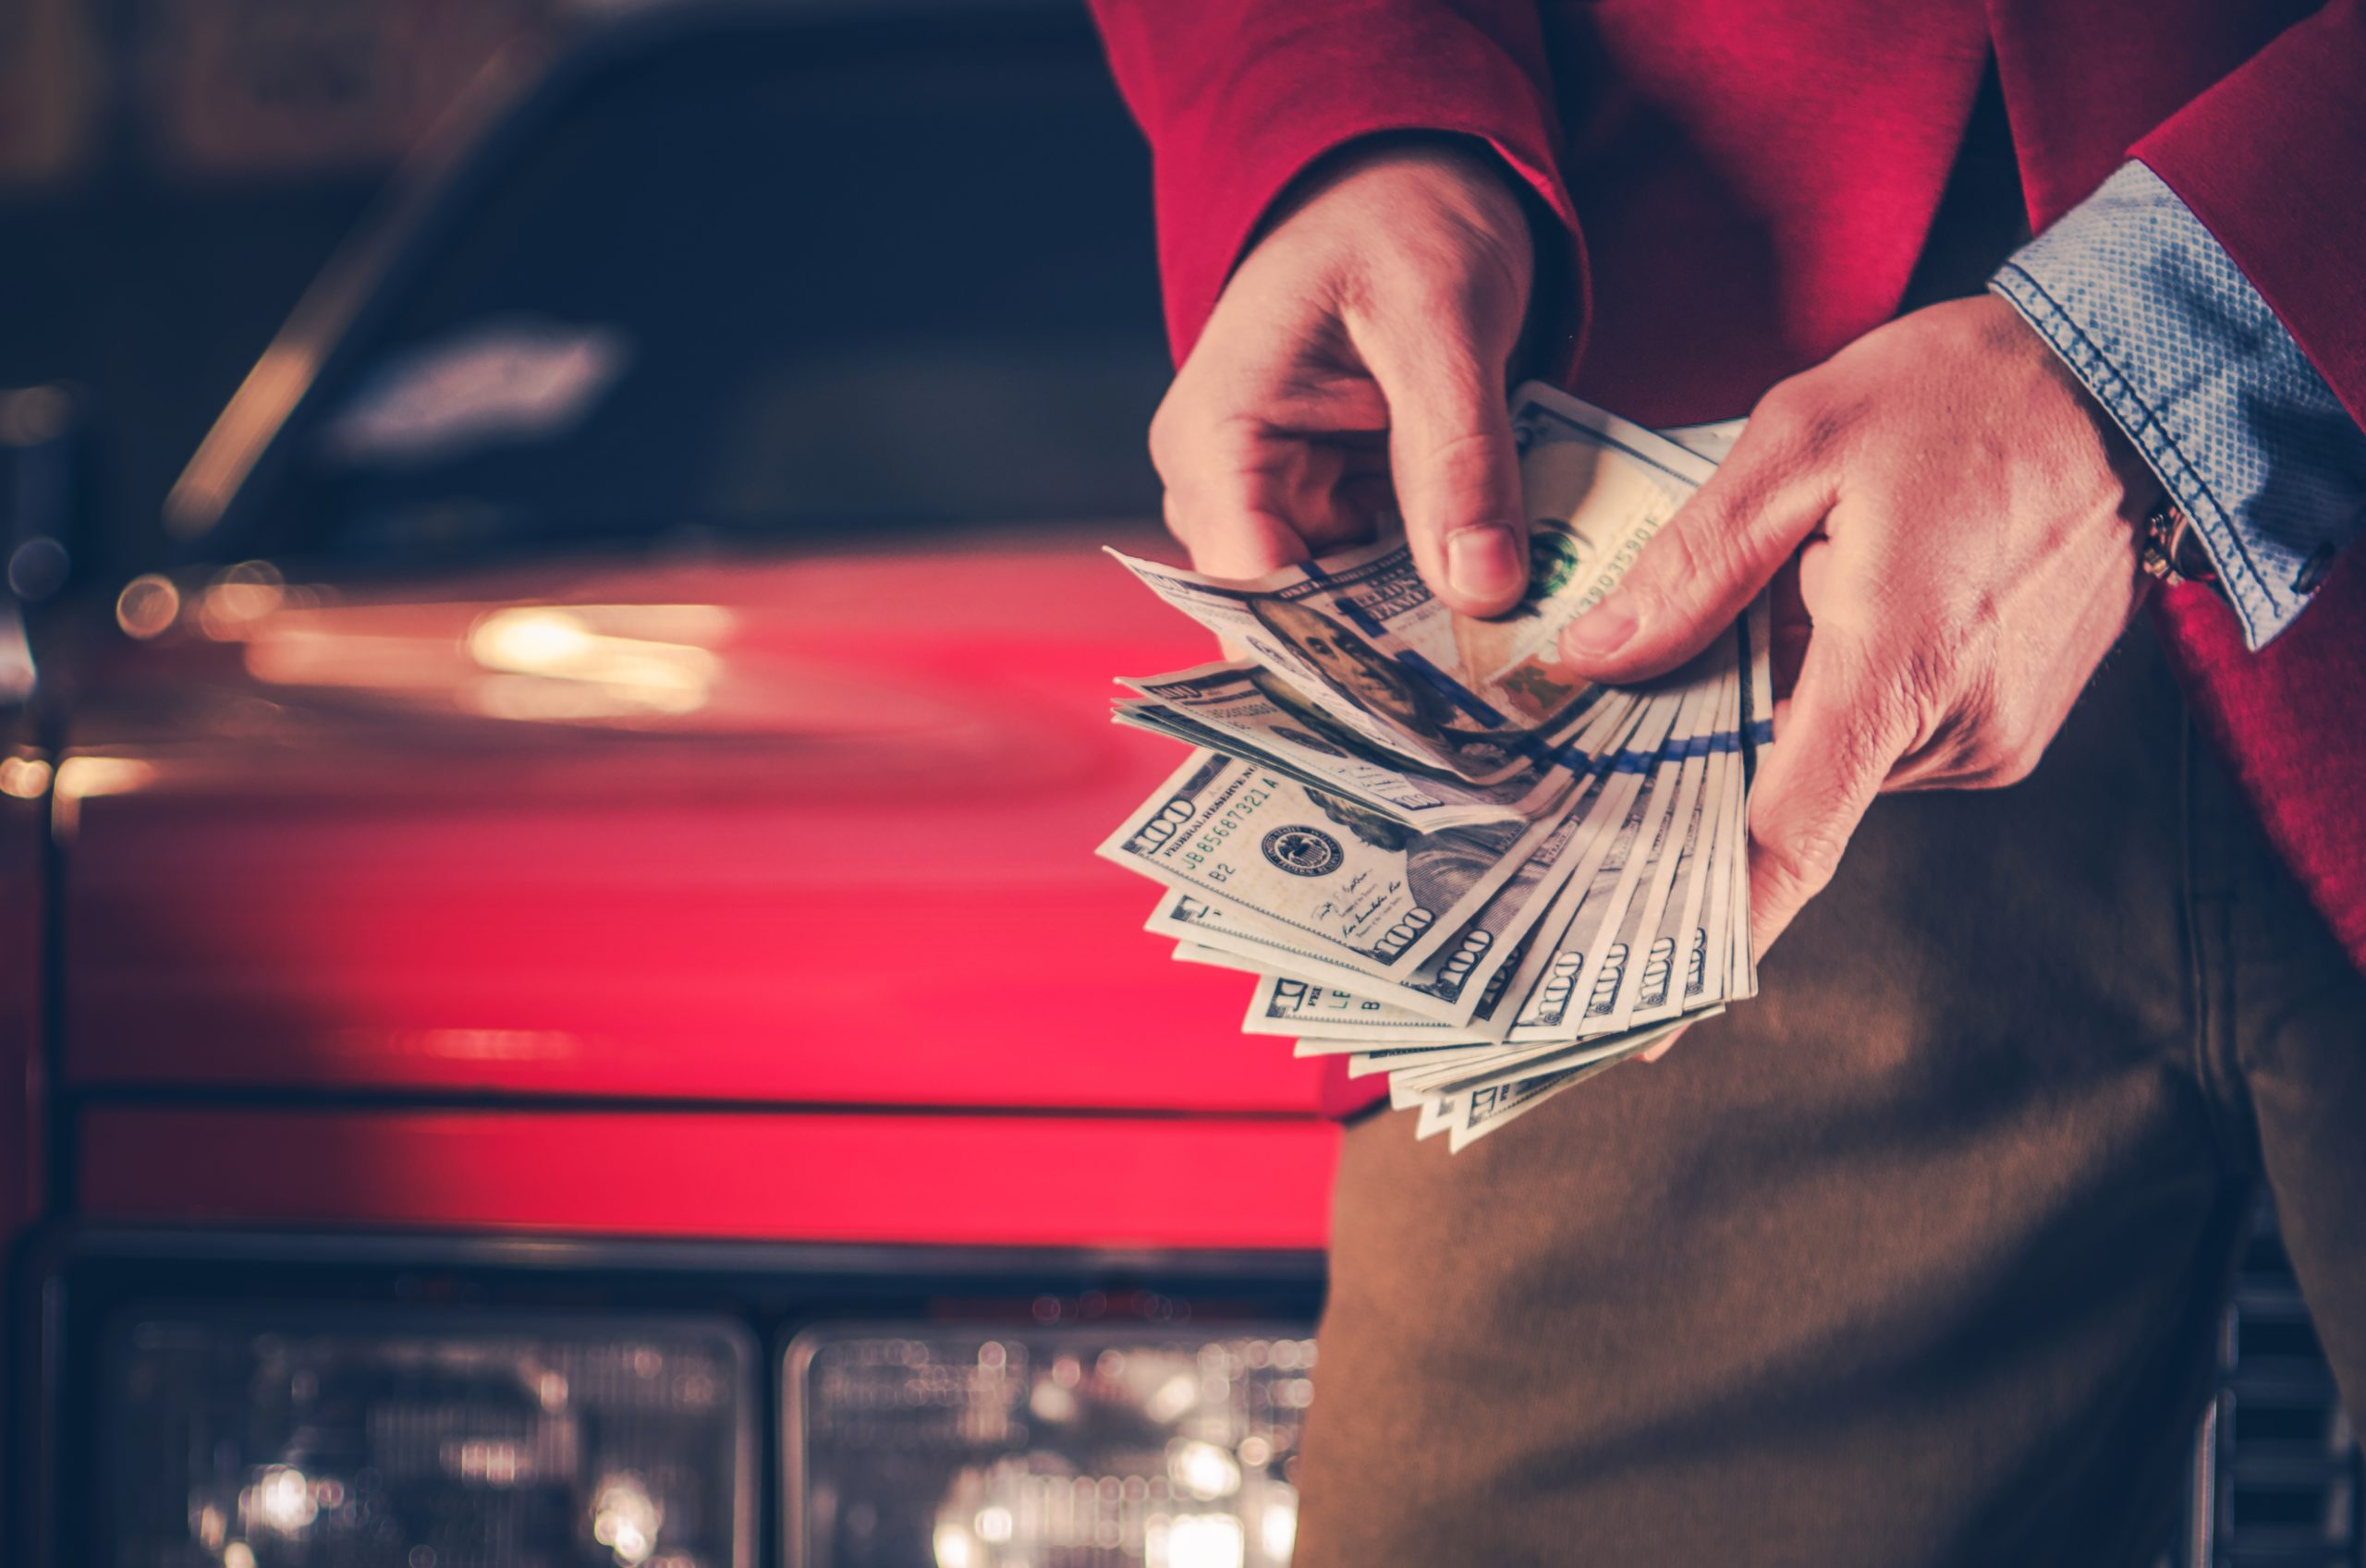 How To Junk My Car For Cash: What is 'junking my car'?